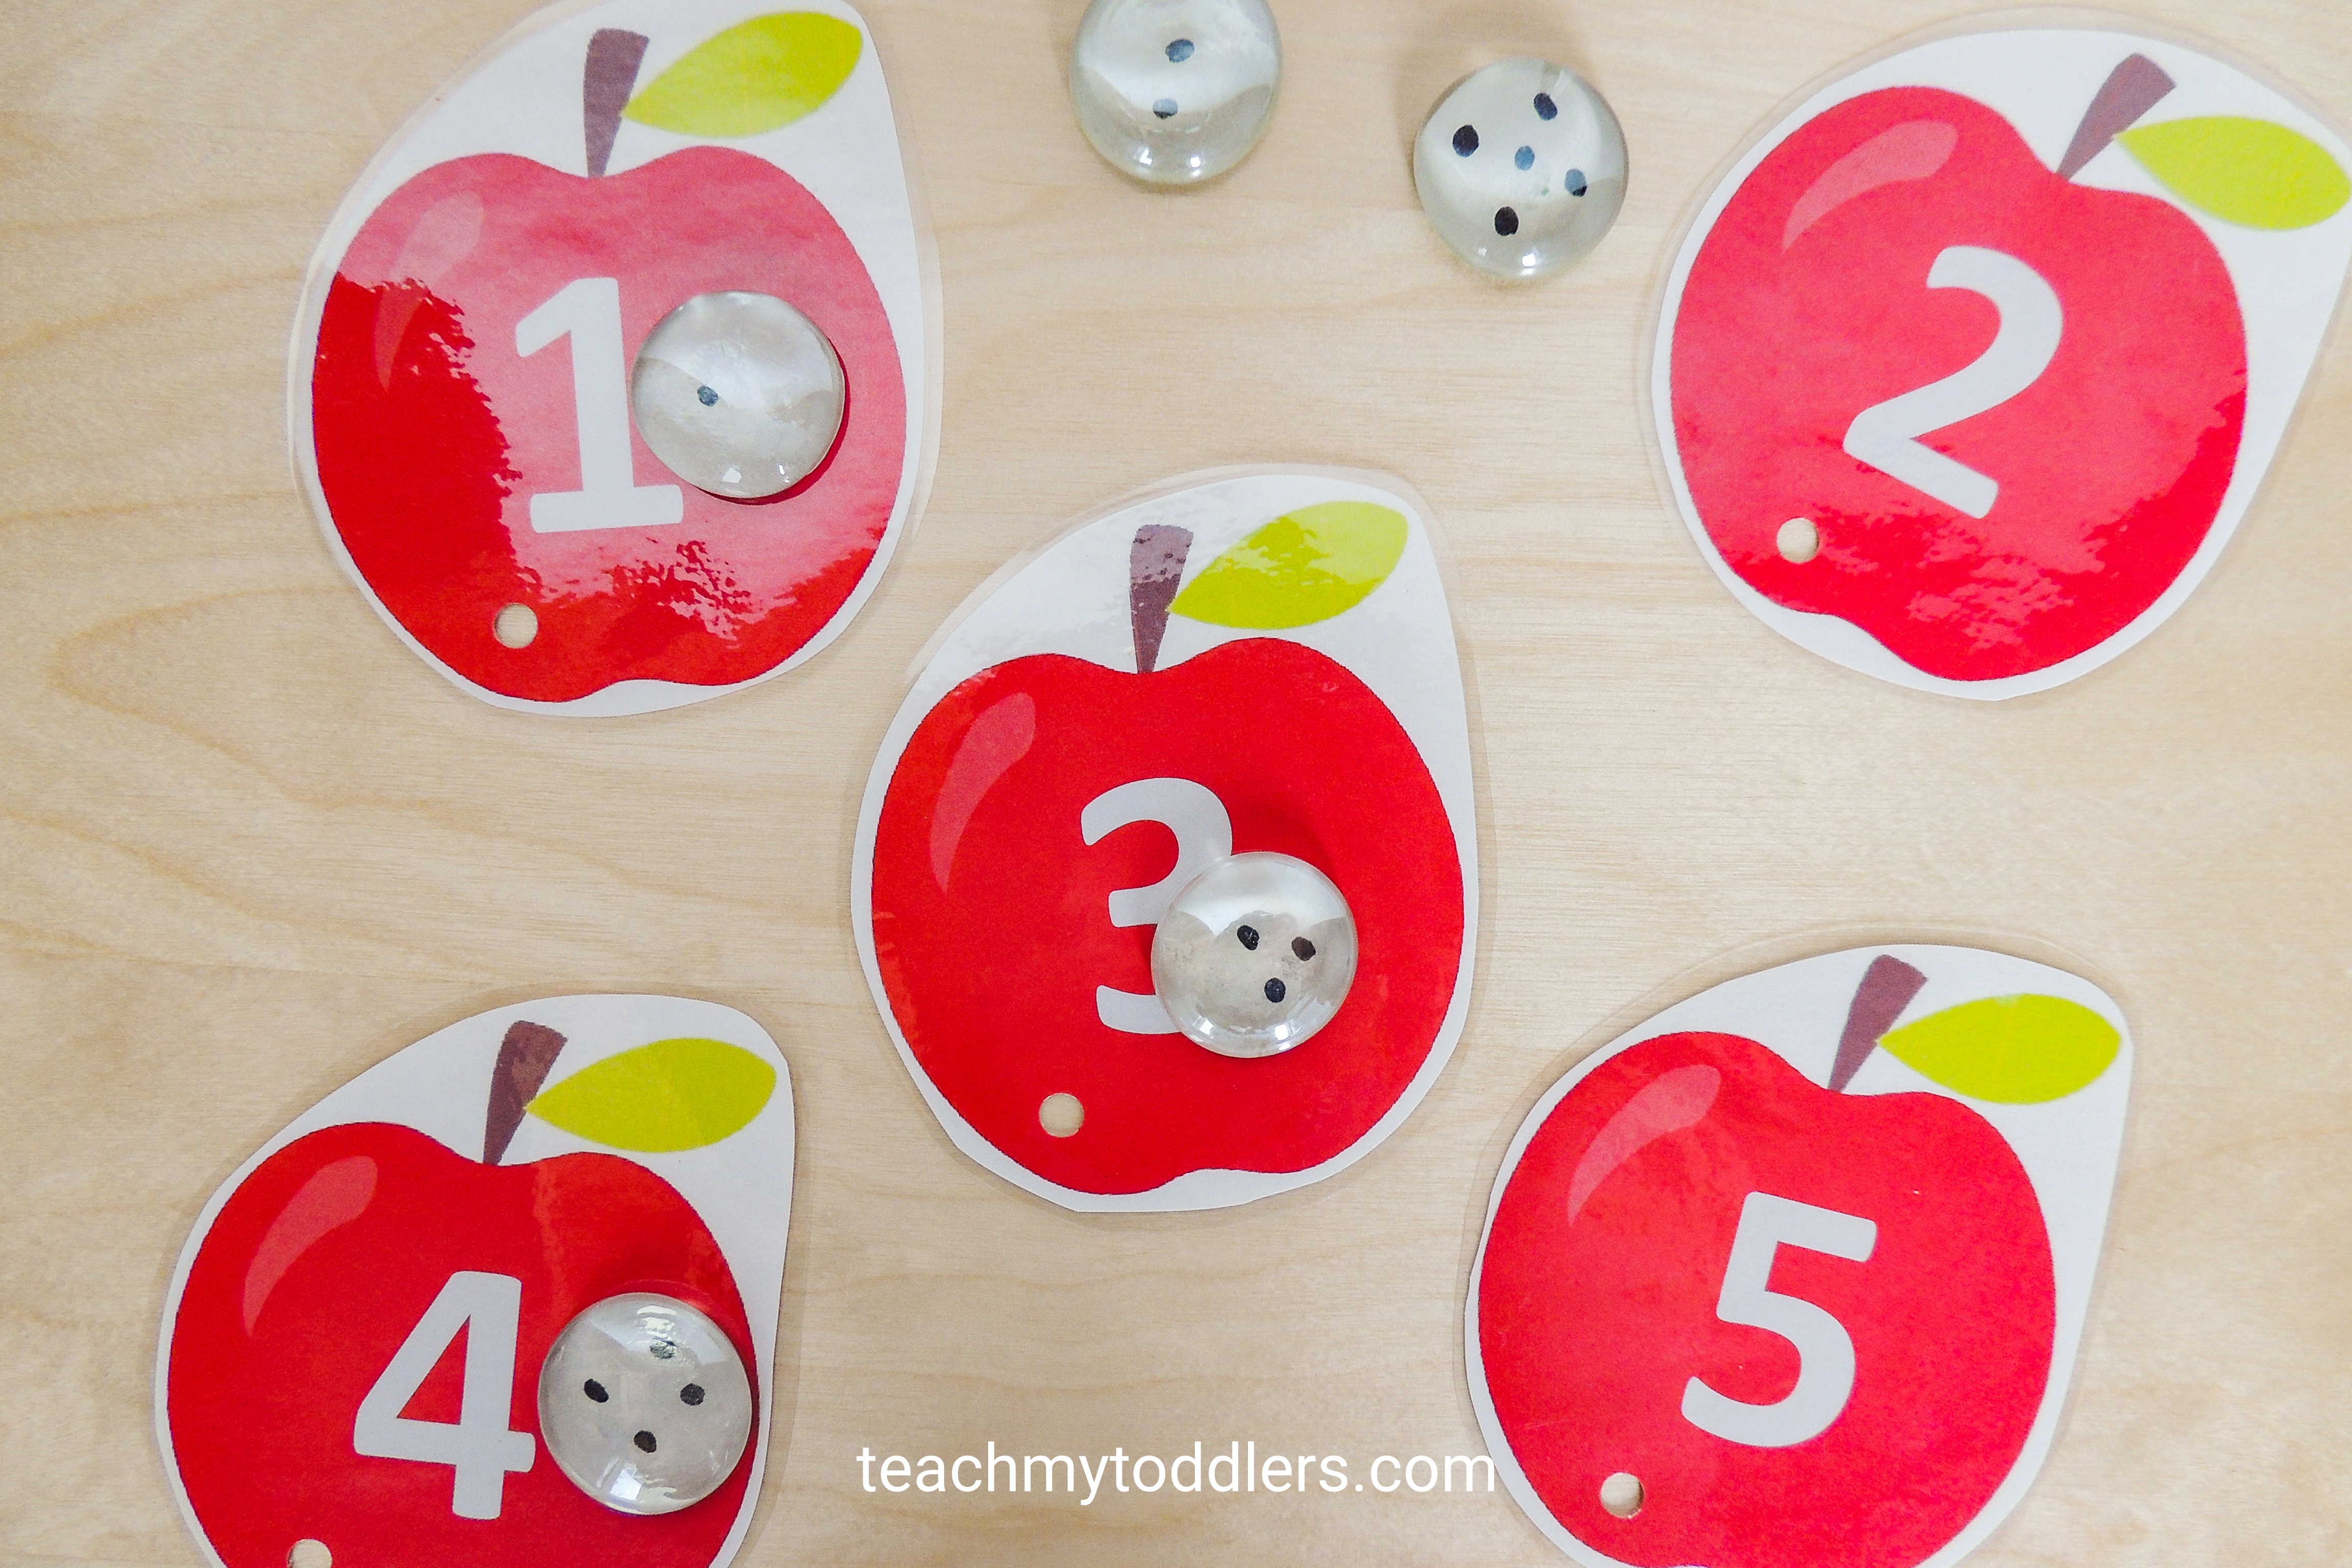 Use these unique clip cards to teach your toddlers numbers